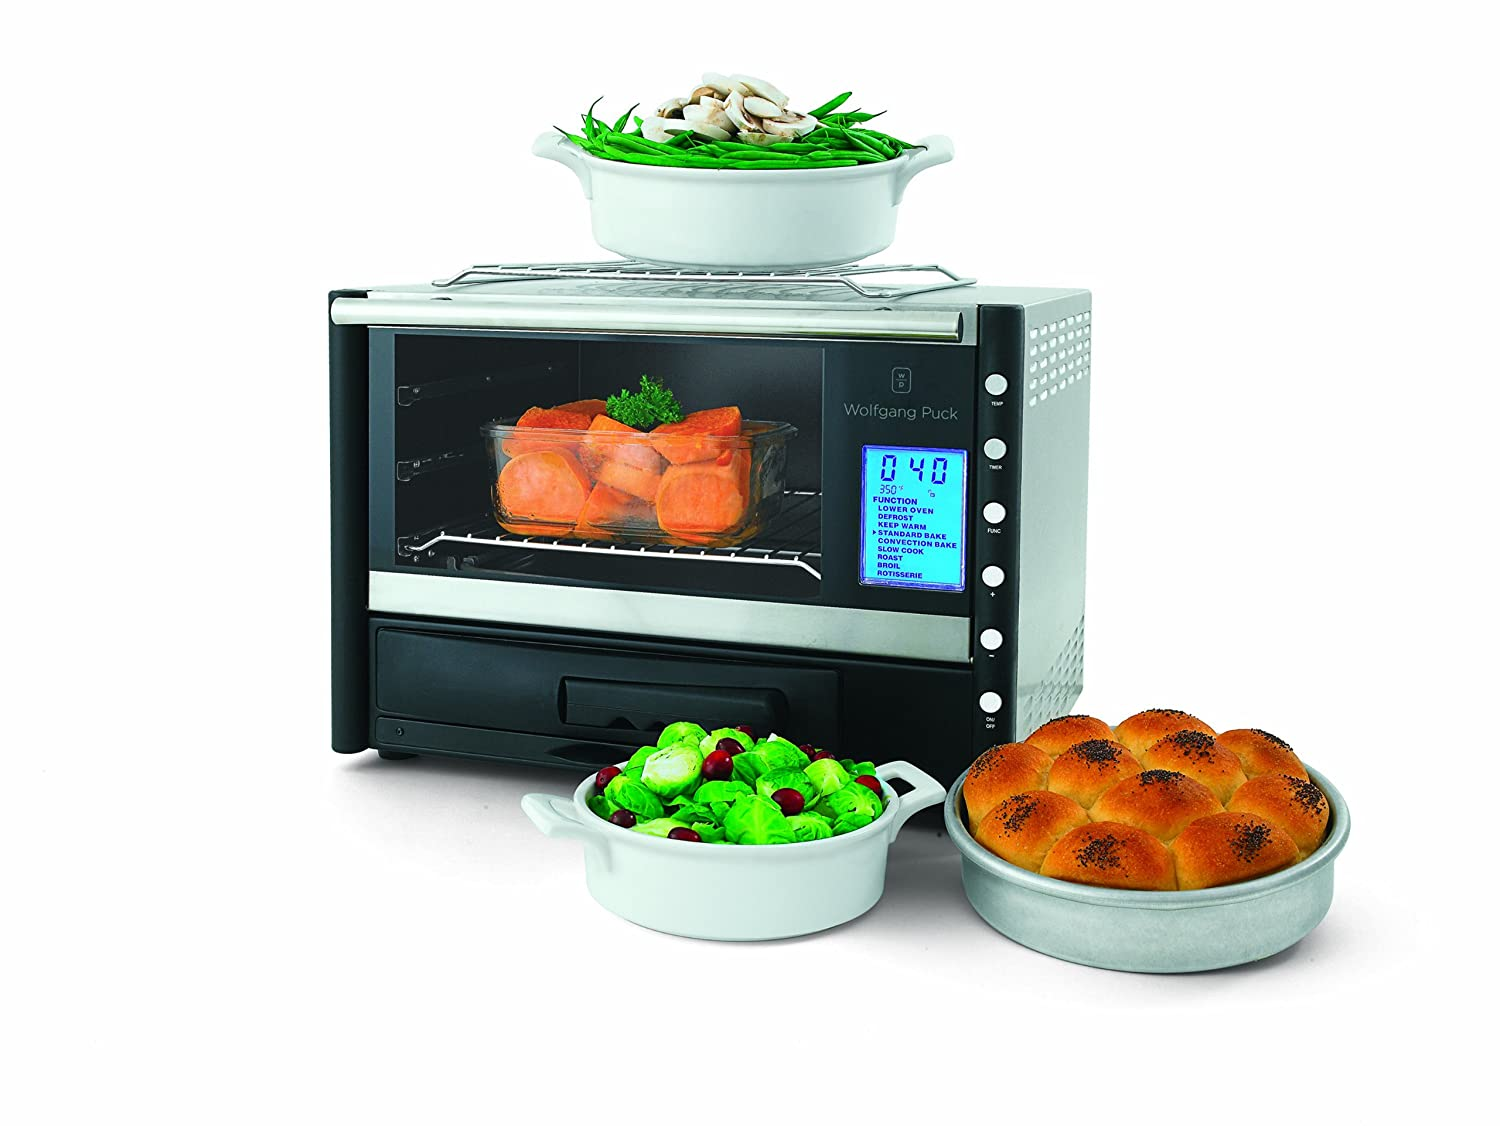 Uncategorized Wolfgang Puck Kitchen Appliances amazon com wolfgang puck wpdcorp20 bistro digital convection oven with rotisserie and pizza drawer countertop ovens